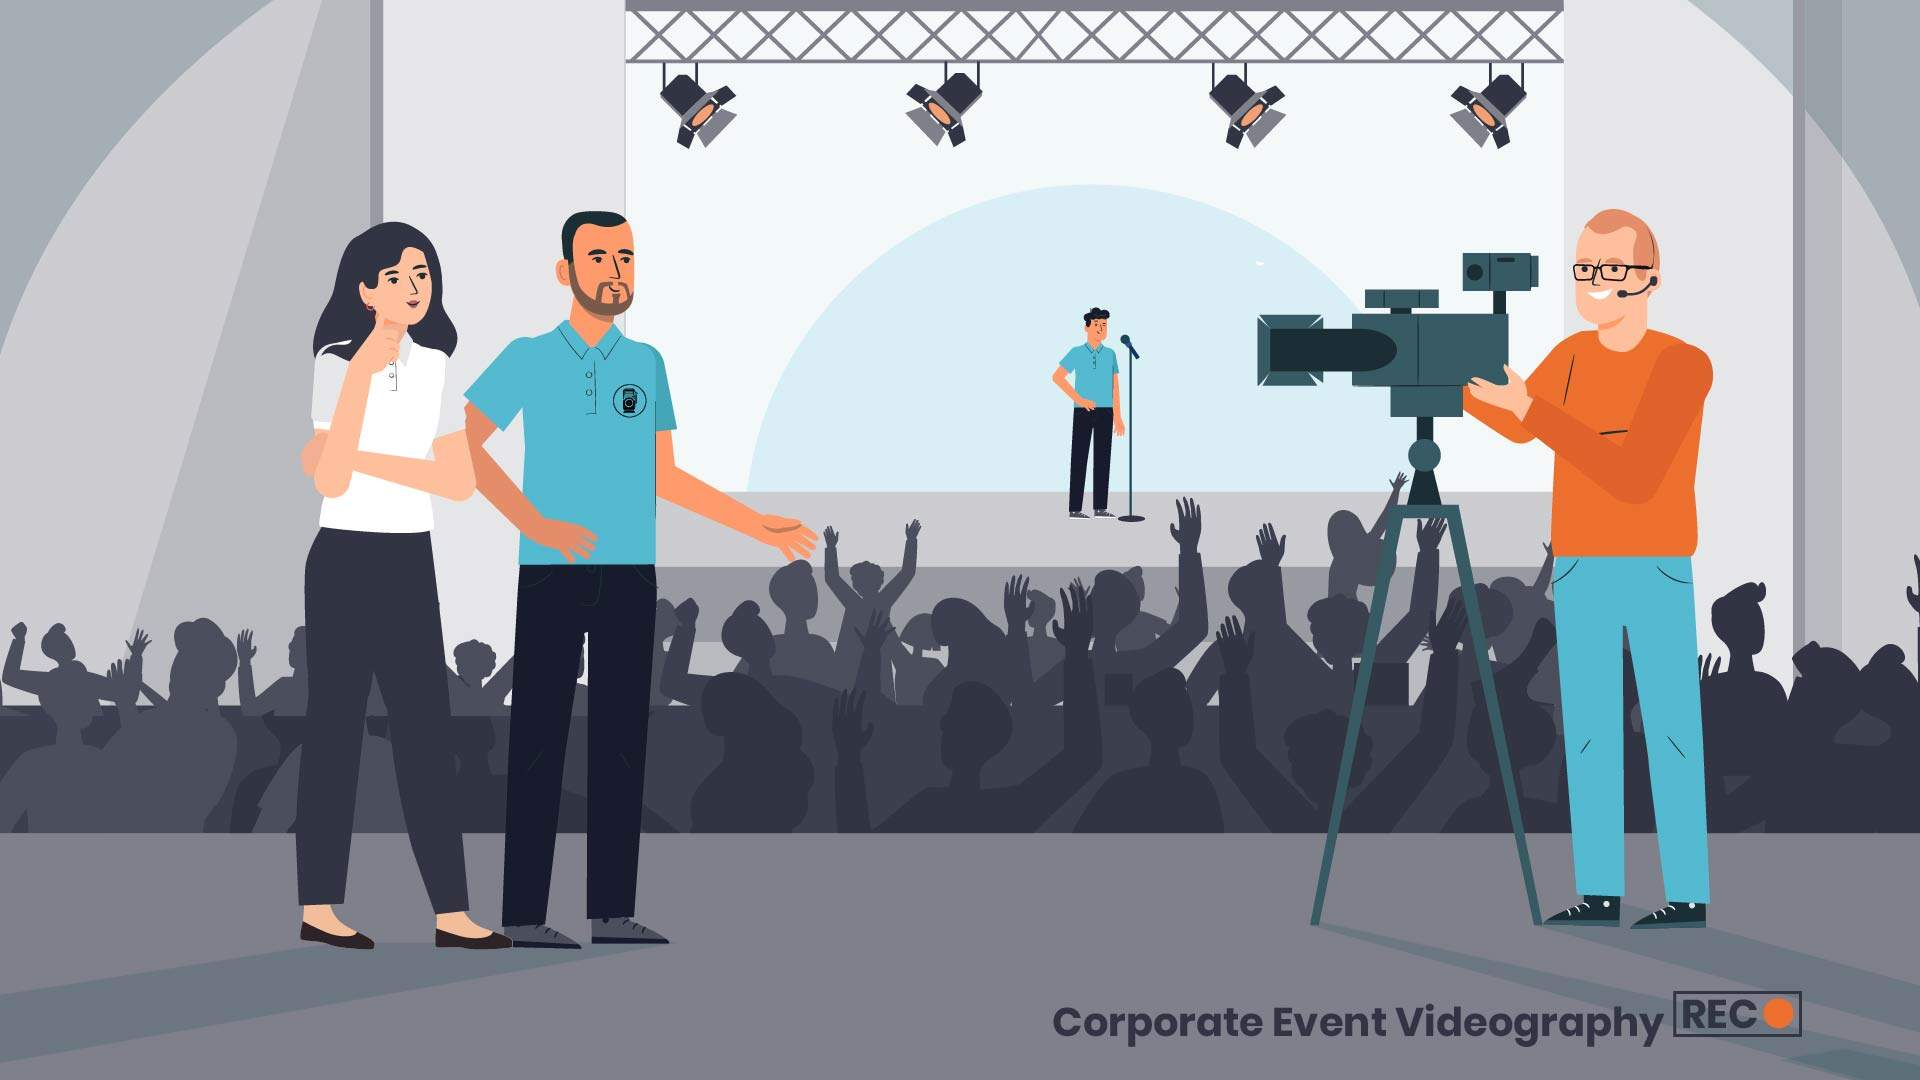 Event video - 2D animated video about professional shooting of events